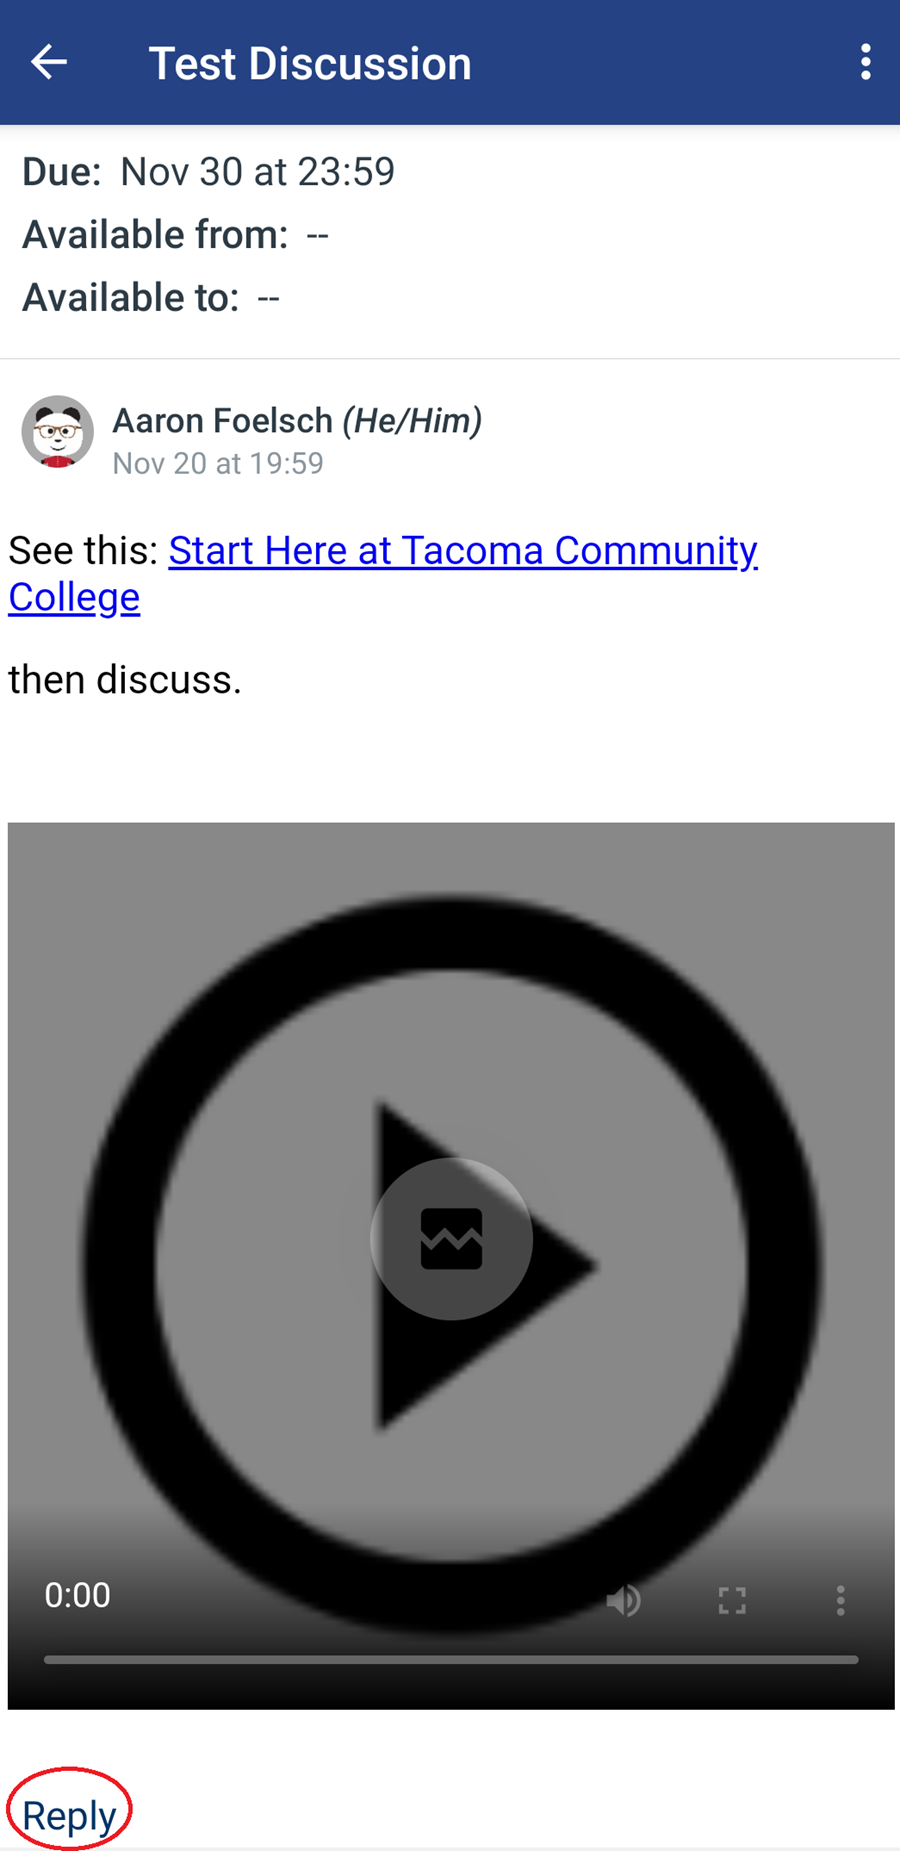 A screenshot of a test discussion in the Canvas Mobile App, the Reply button is circled